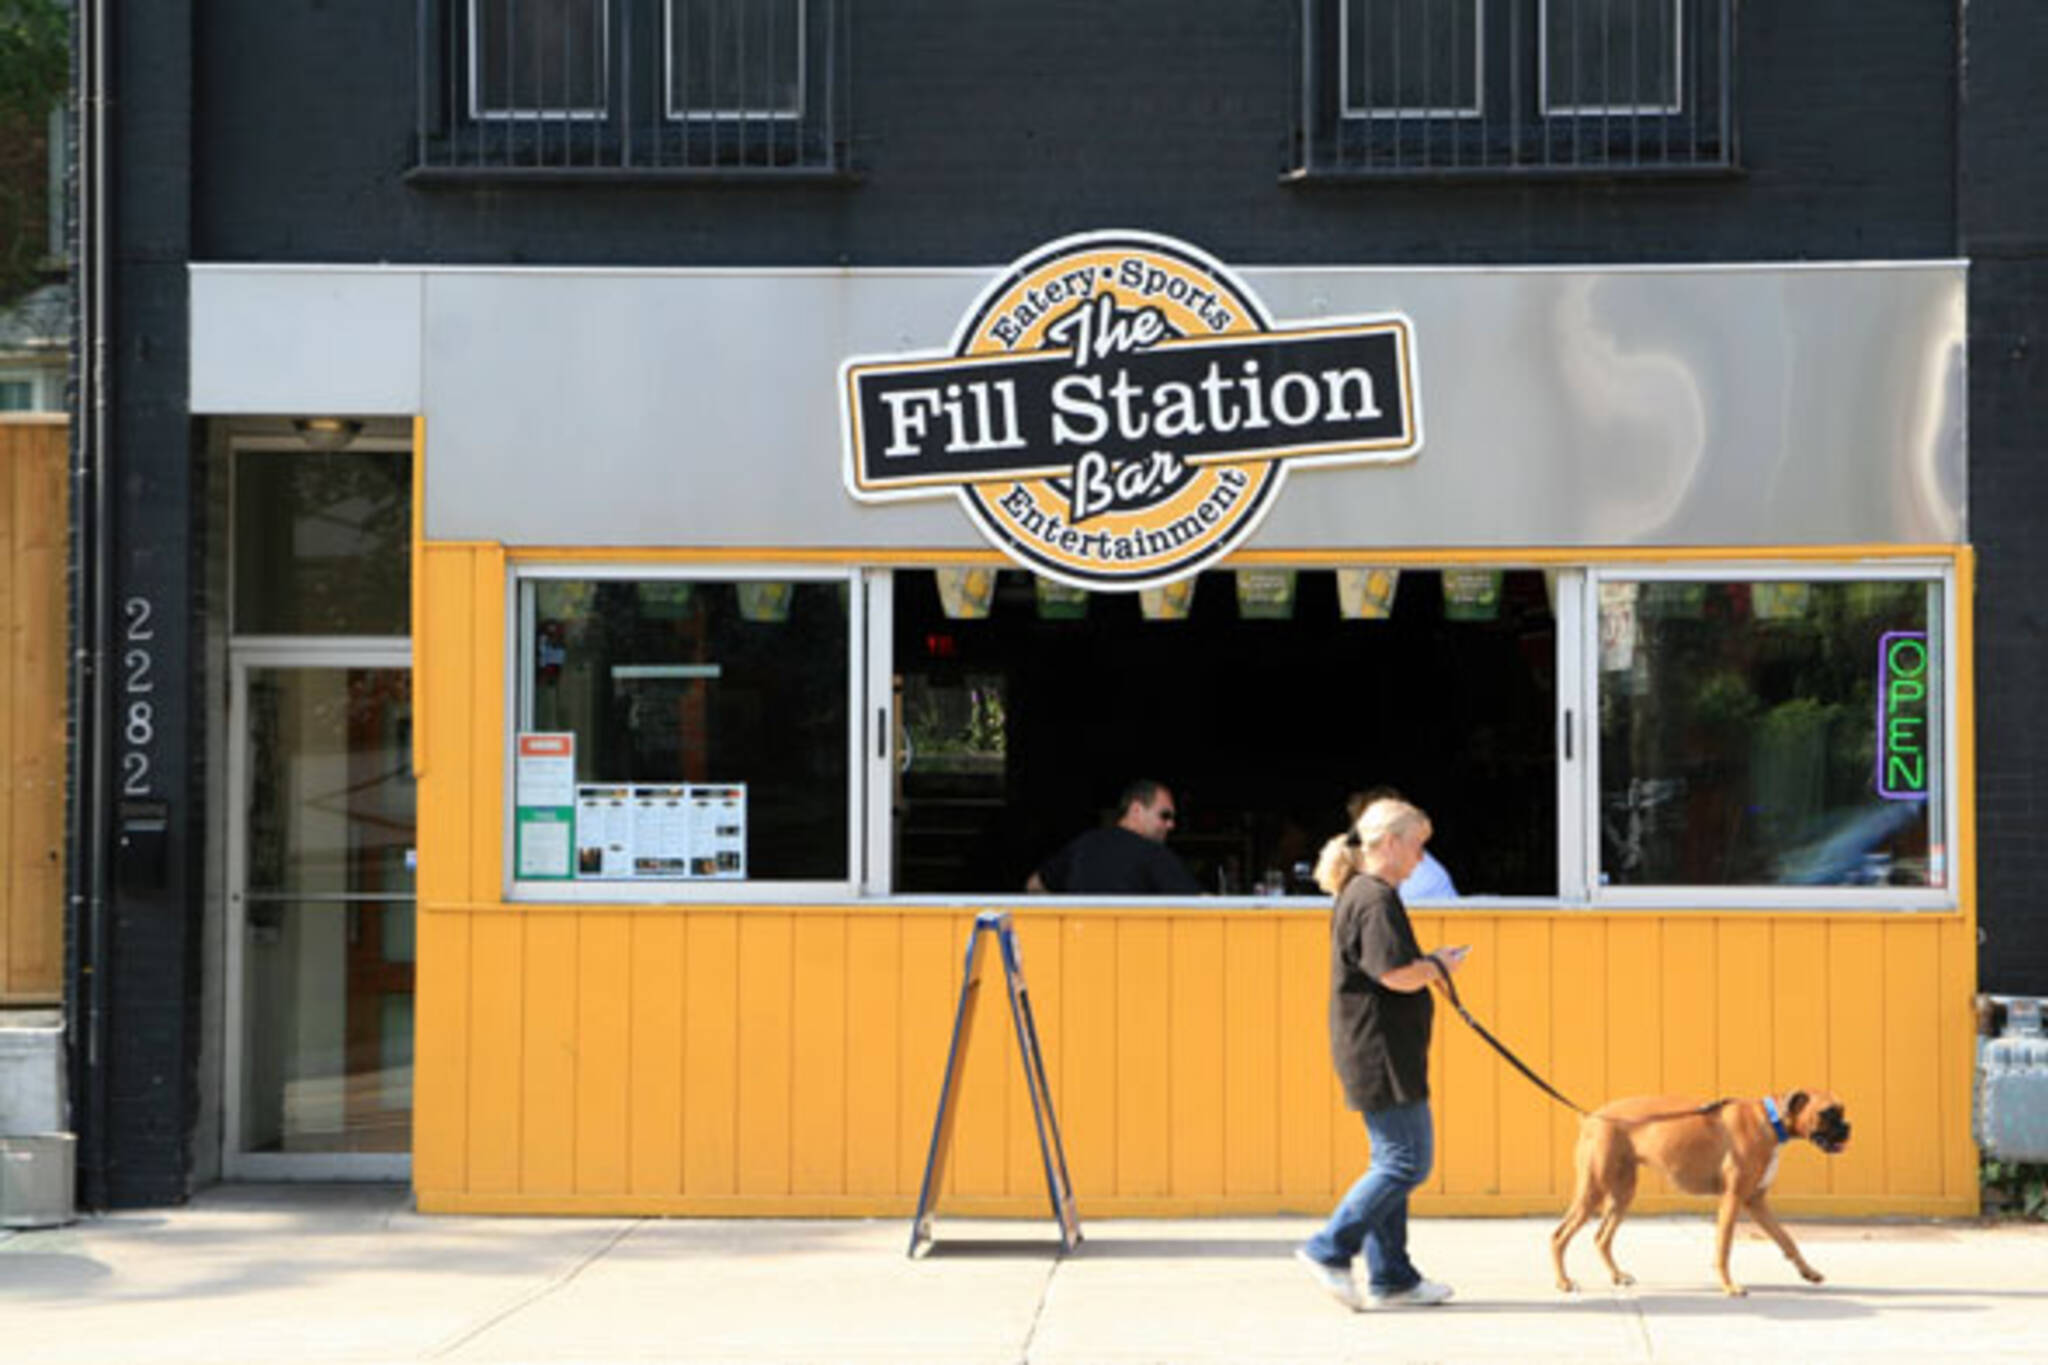 The Fill Station